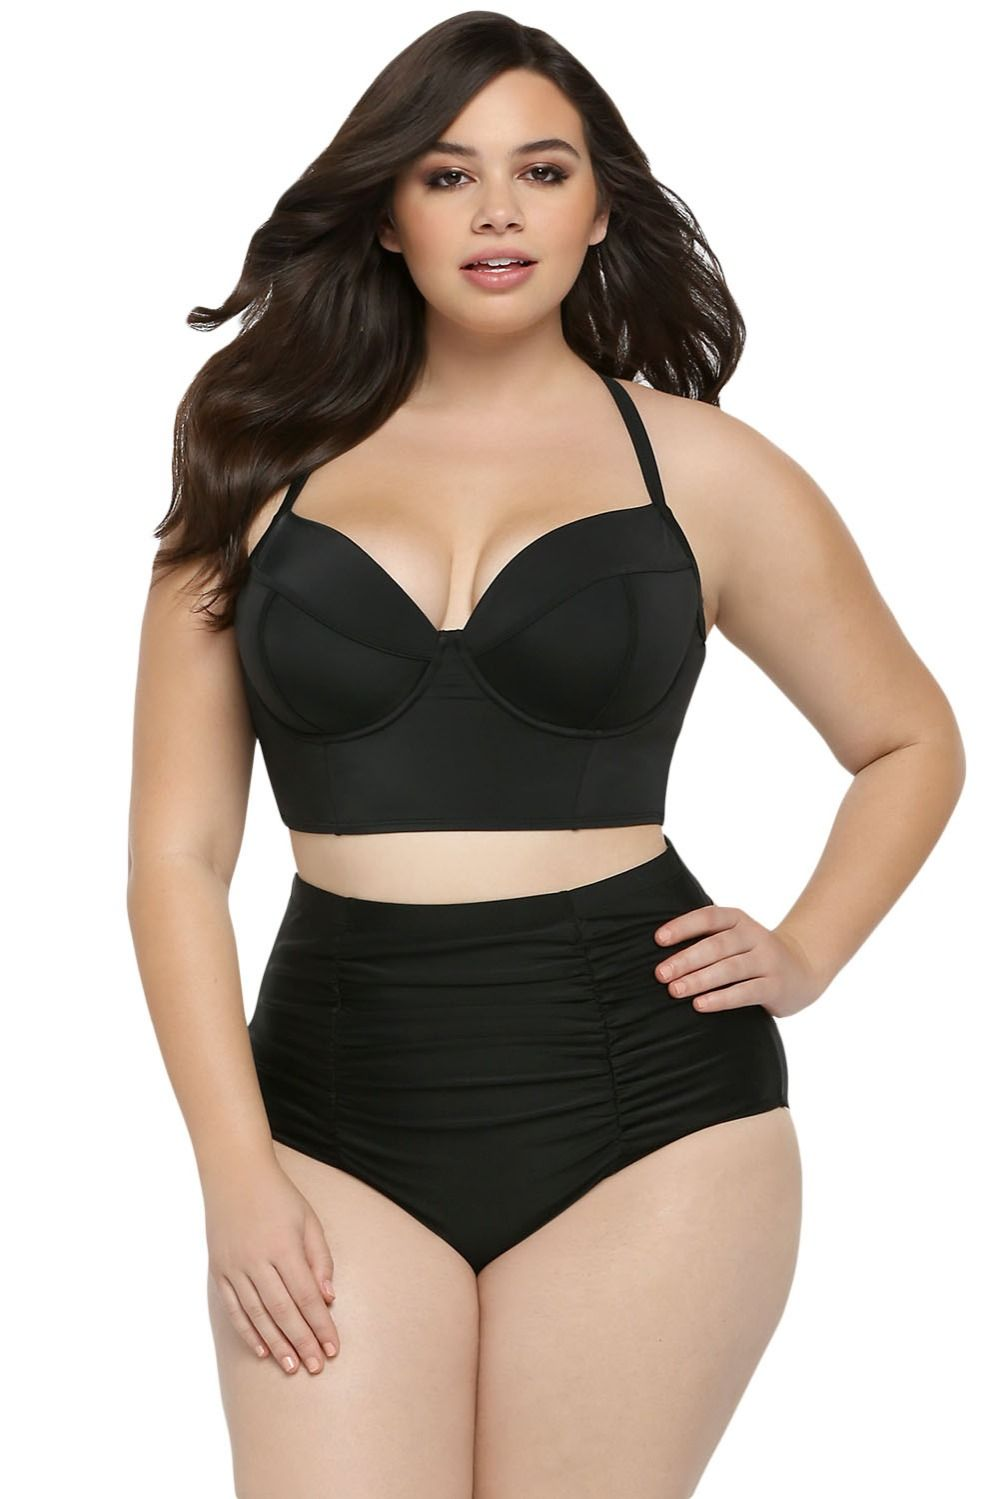 27501c16ba Adogirl Plus Size Swimwear New Women Black Ruched Halter Bra Padded High  Waist Swimsuit Sexy Seamed Bathing Suit XL-4XL for just  20.95